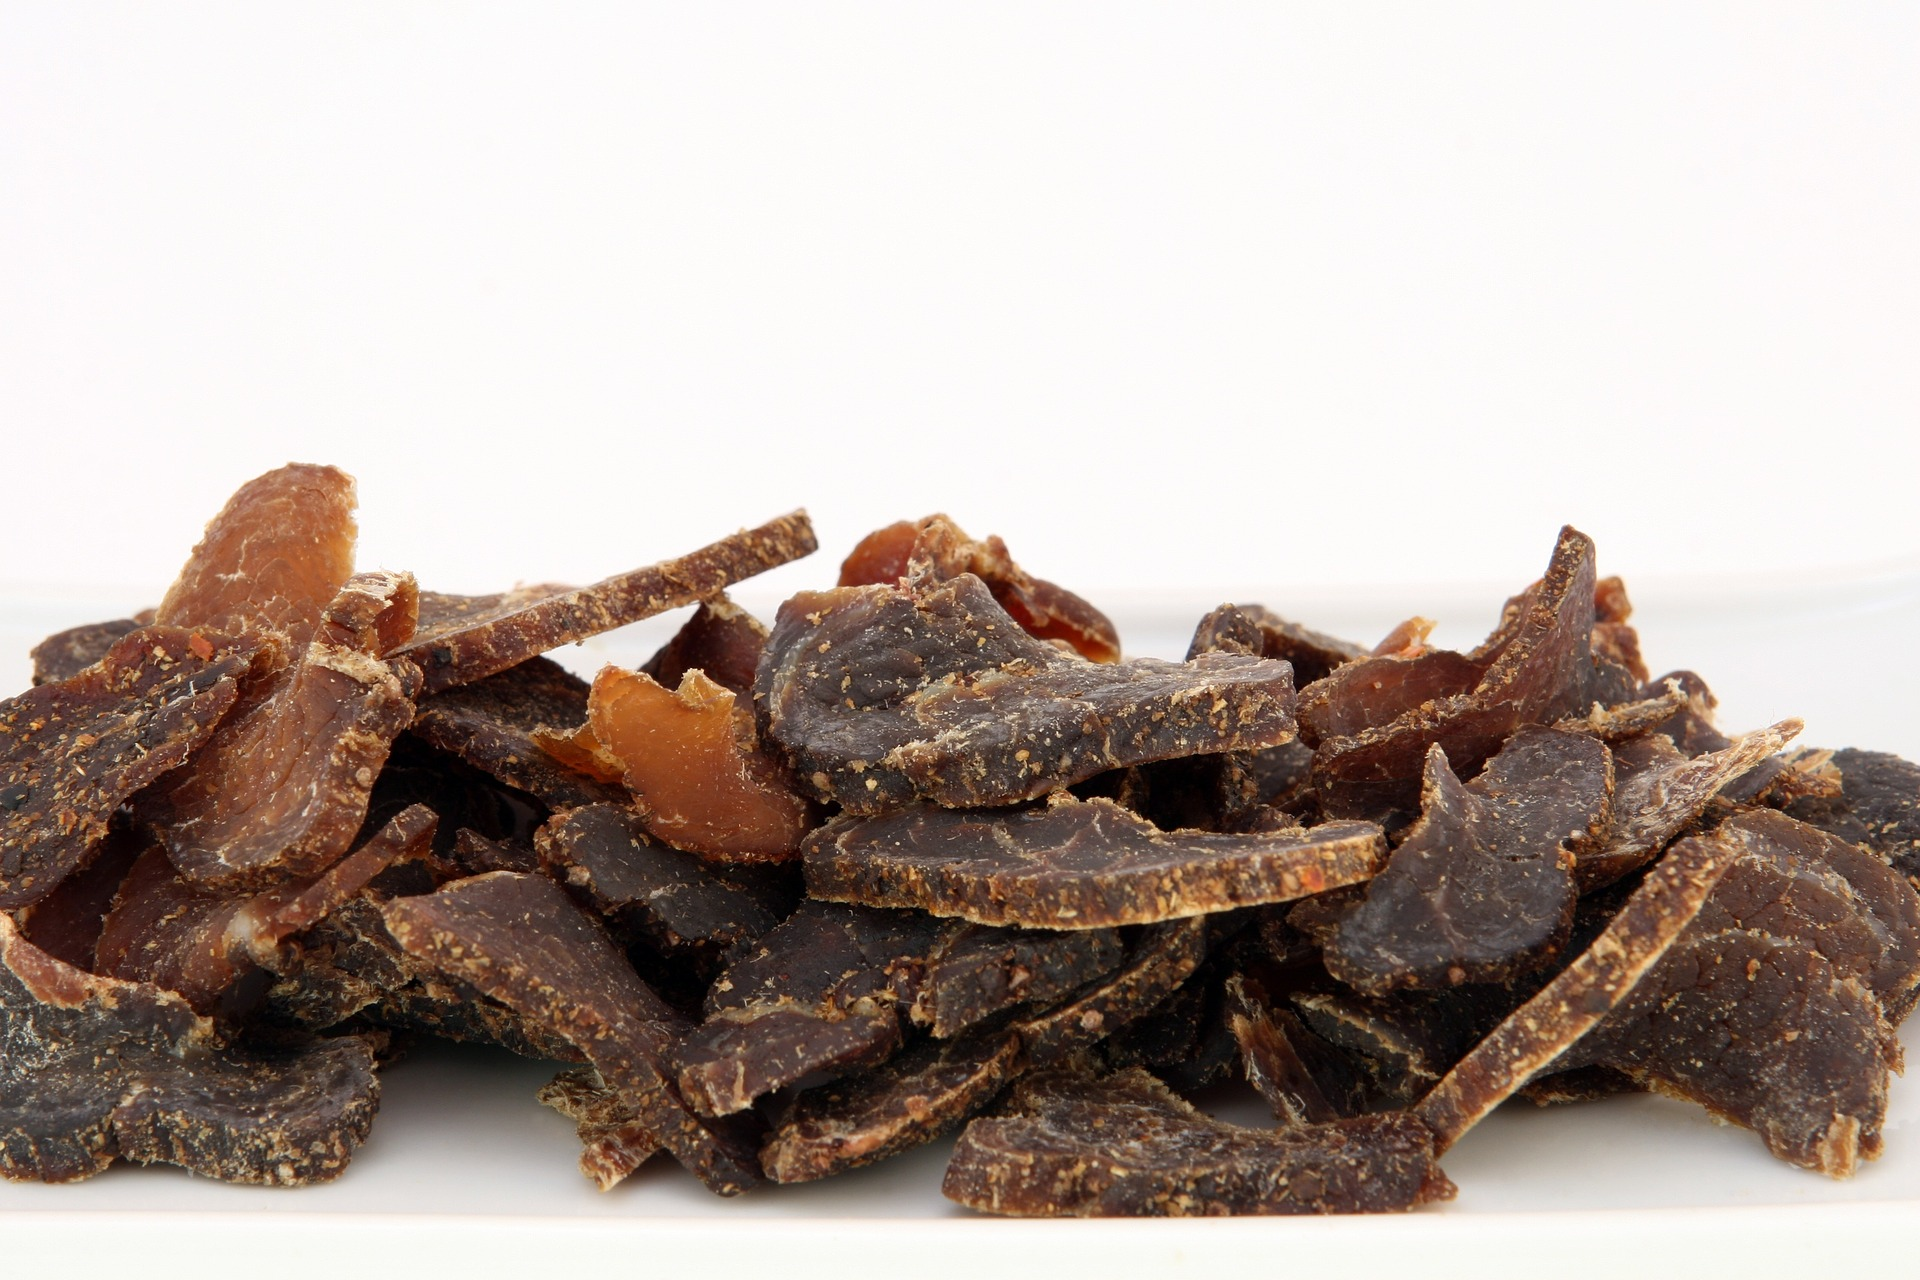 Handy & Healthy Benefits of Making Dehydrated Food